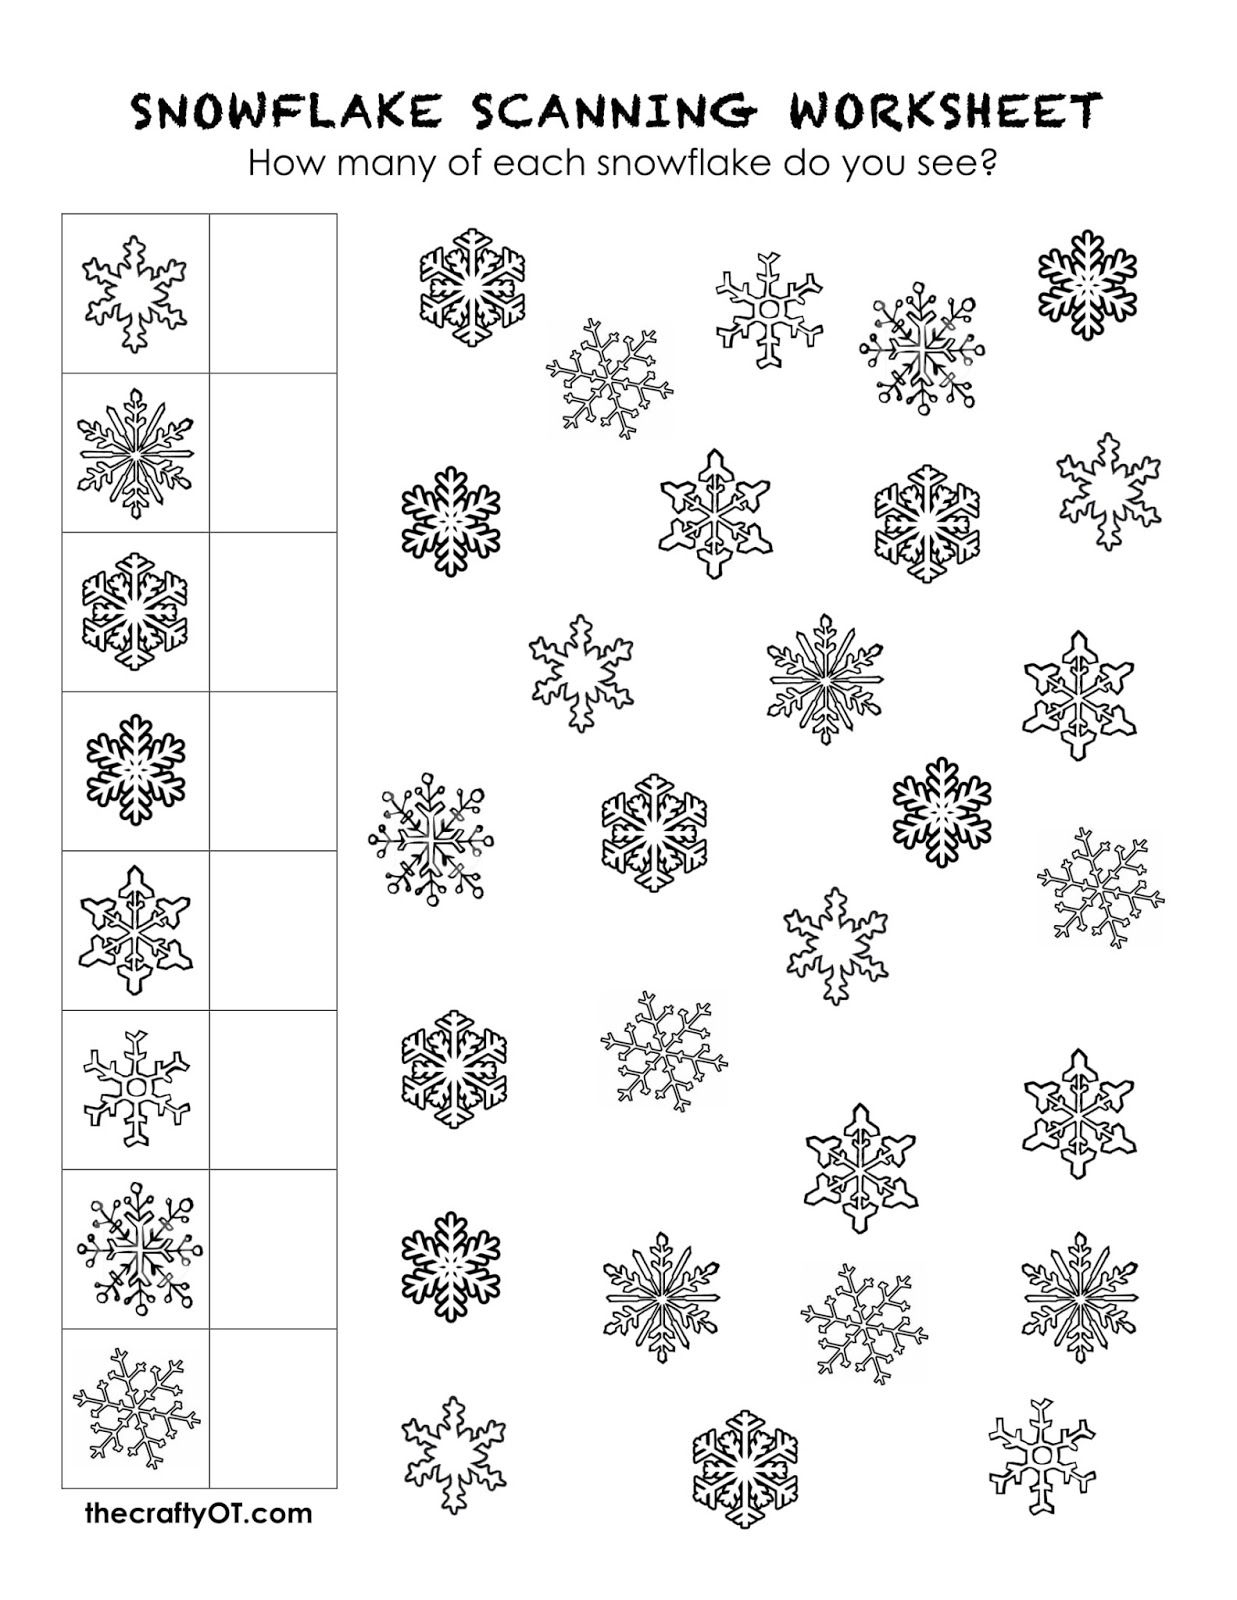 Free Winter Worksheets | Occupational Therapy | Occupational Therapy | Printable Visual Scanning Worksheets For Adults